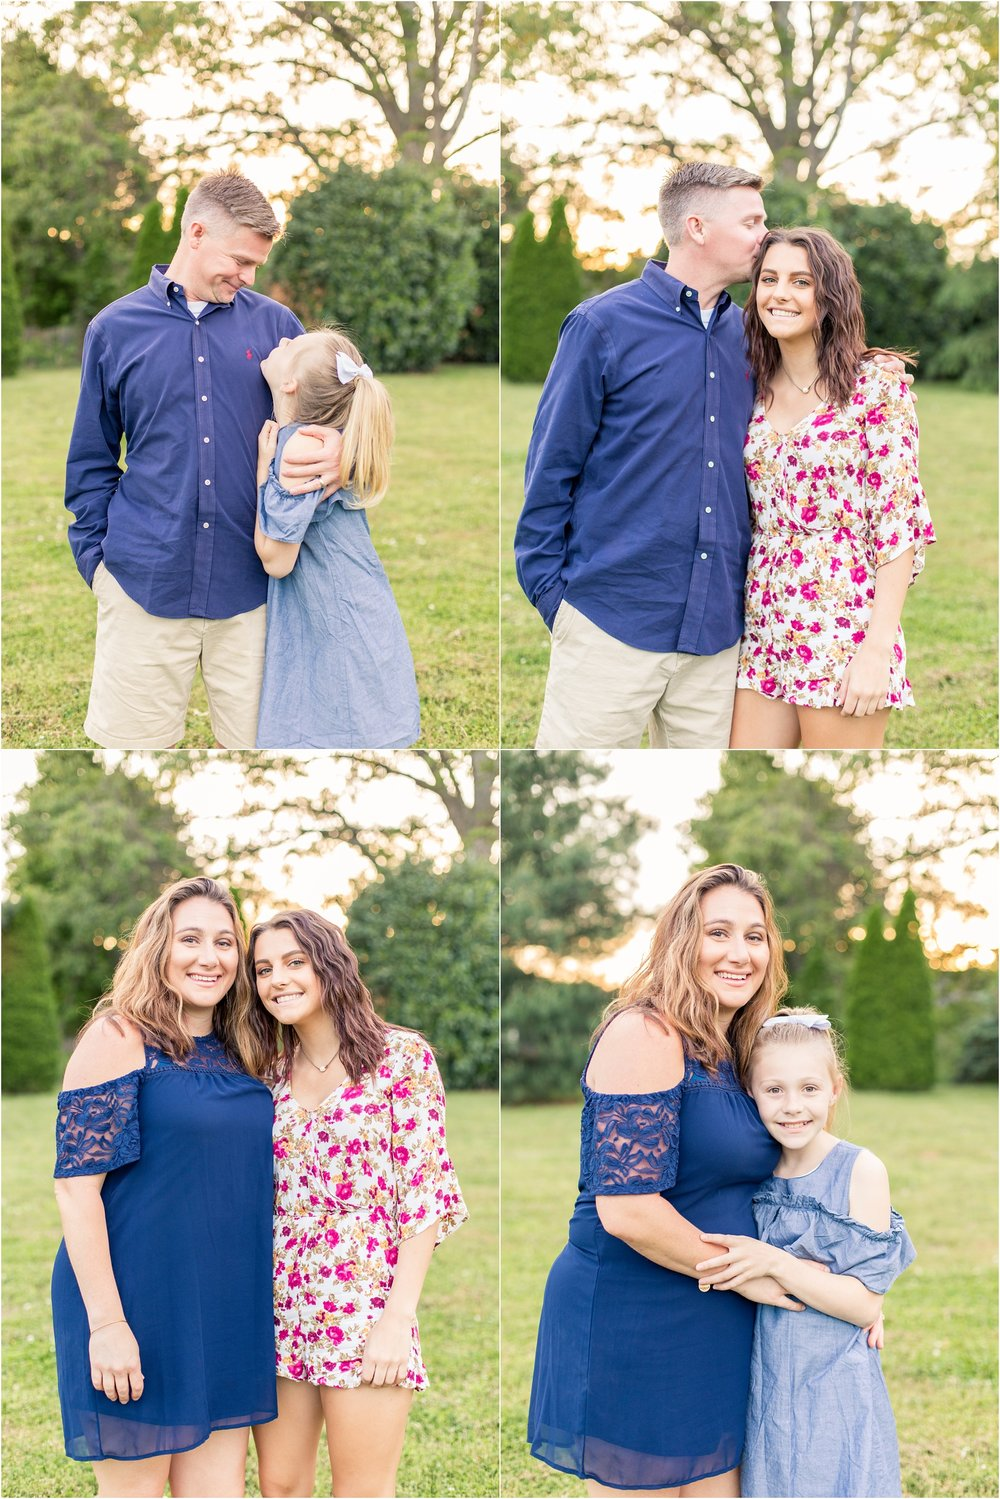 Savannah Eve Photography- Baysden Family-22.jpg